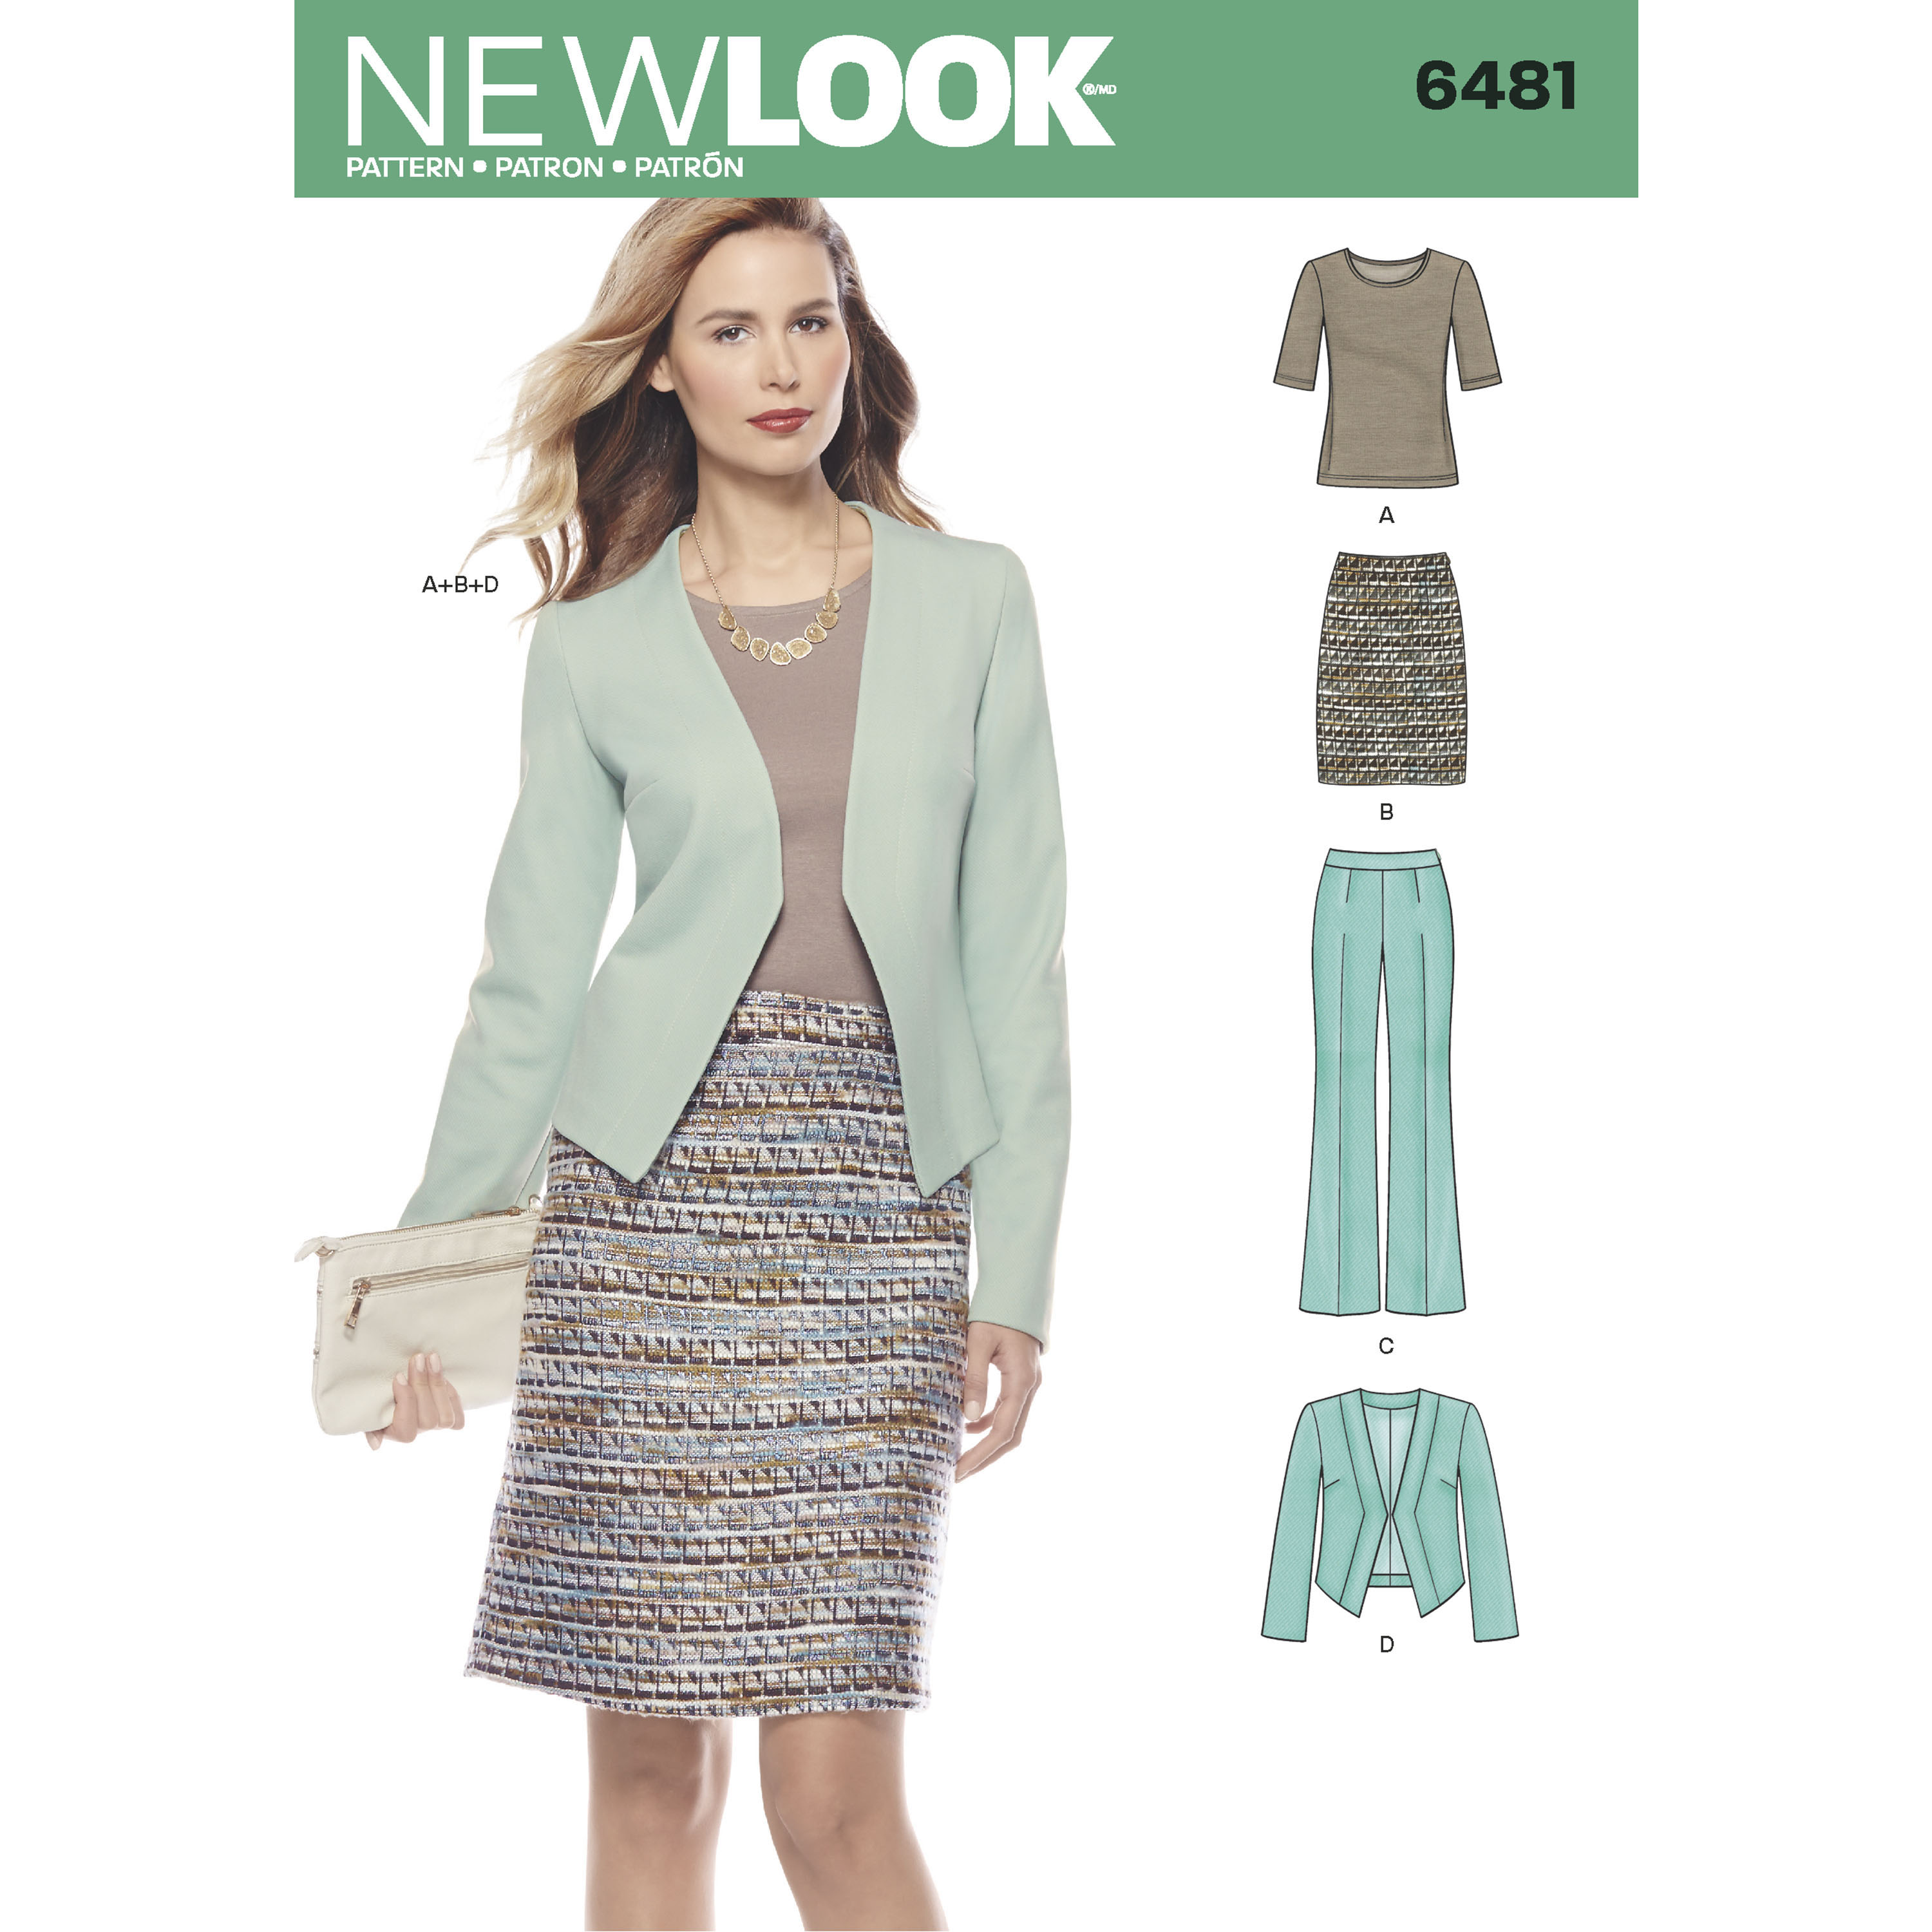 New Look 6481 Misses Skirt Pants Jacket And Knit Top